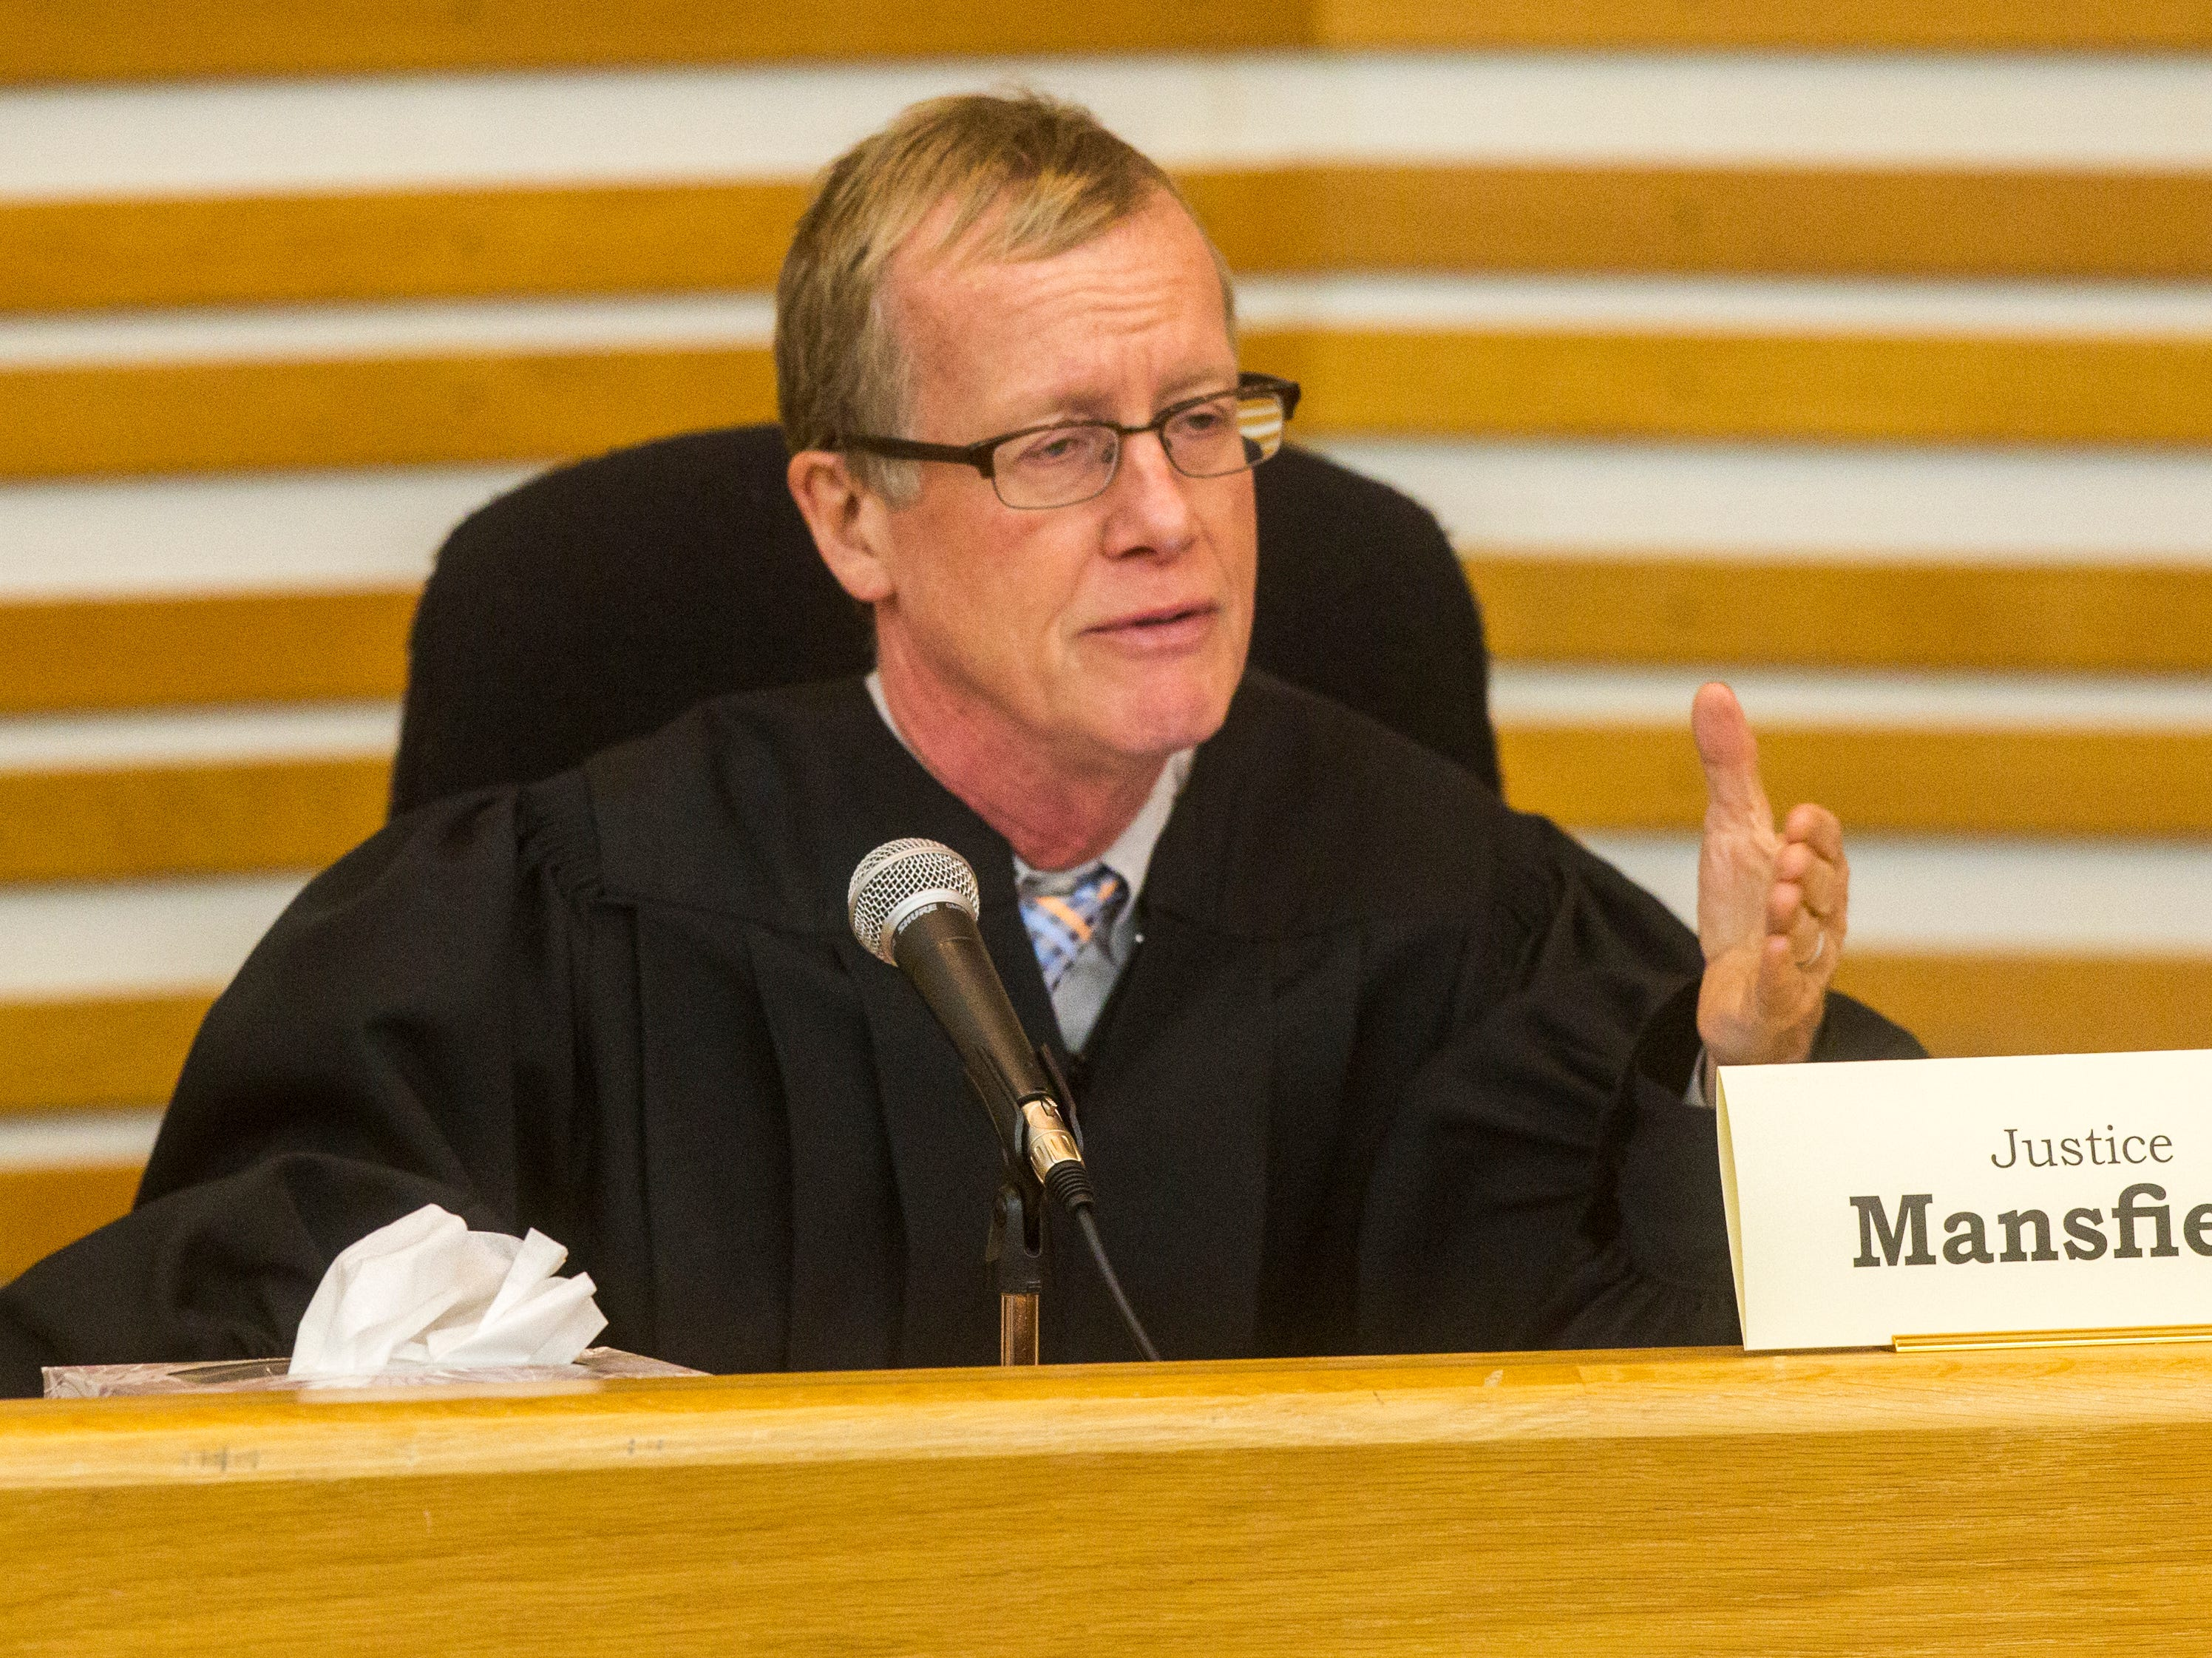 Justice Edward Mansfield of the Iowa Supreme Court speaks while oral arguments are presented on Friday, Sept. 7, 2018, at Levitt Auditorium inside the Boyd Law Building on the University of Iowa campus in Iowa City.